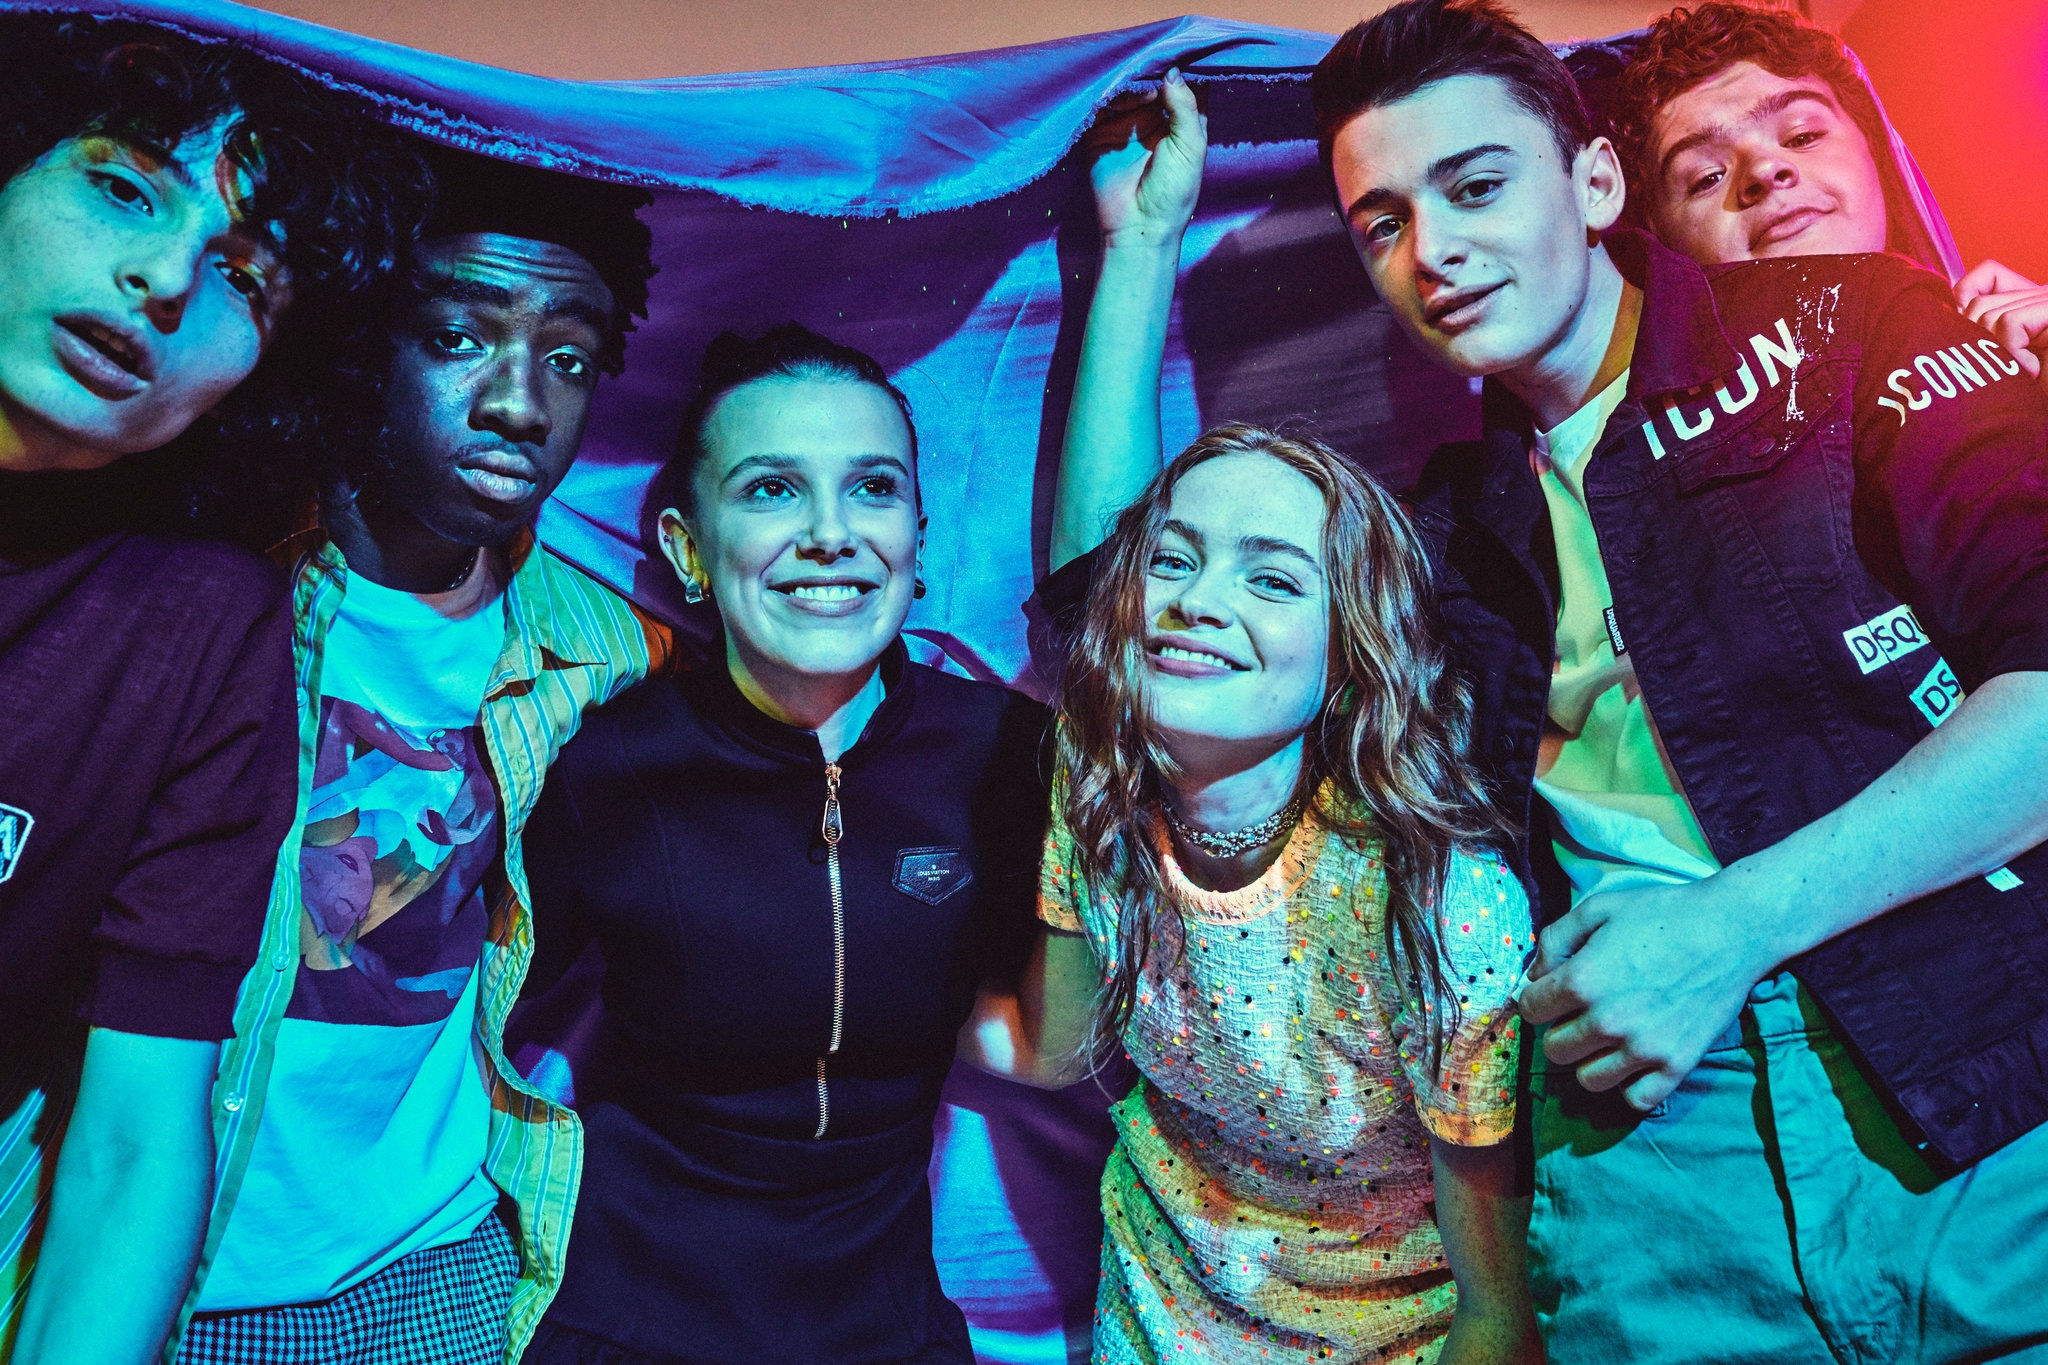 Sadie Sink and the Stranger Things cast - New York Times Photoshoot - 2019